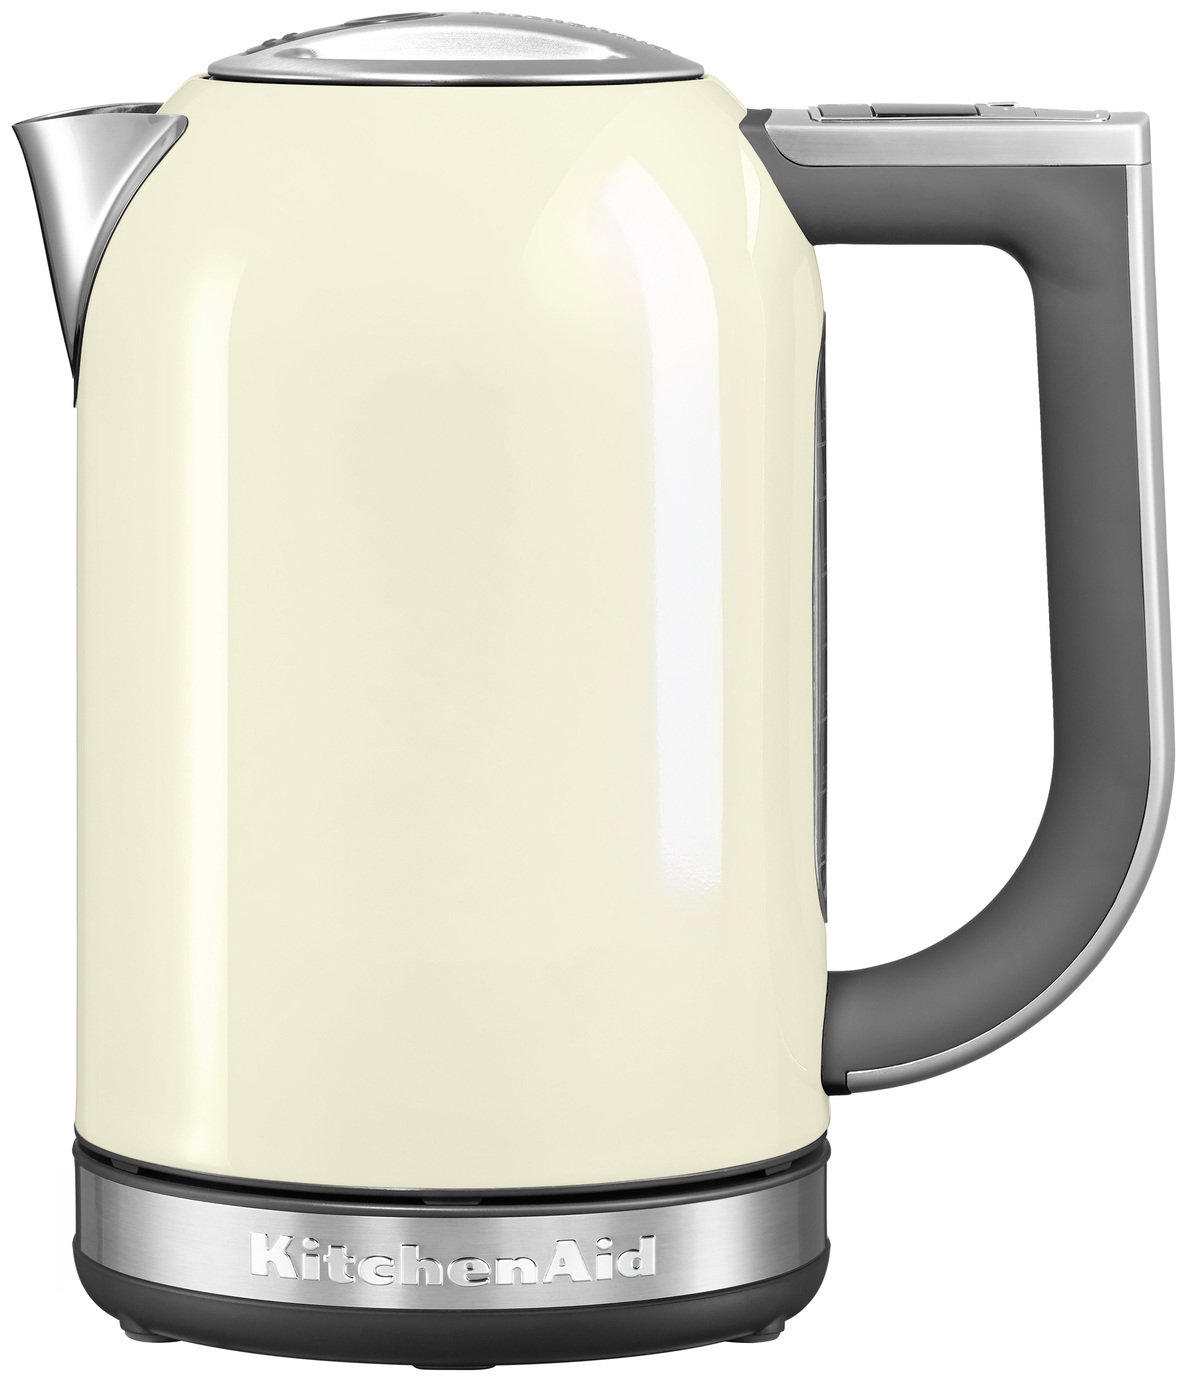 KitchenAid 5KEK1722BAC Jug Kettle - Almond